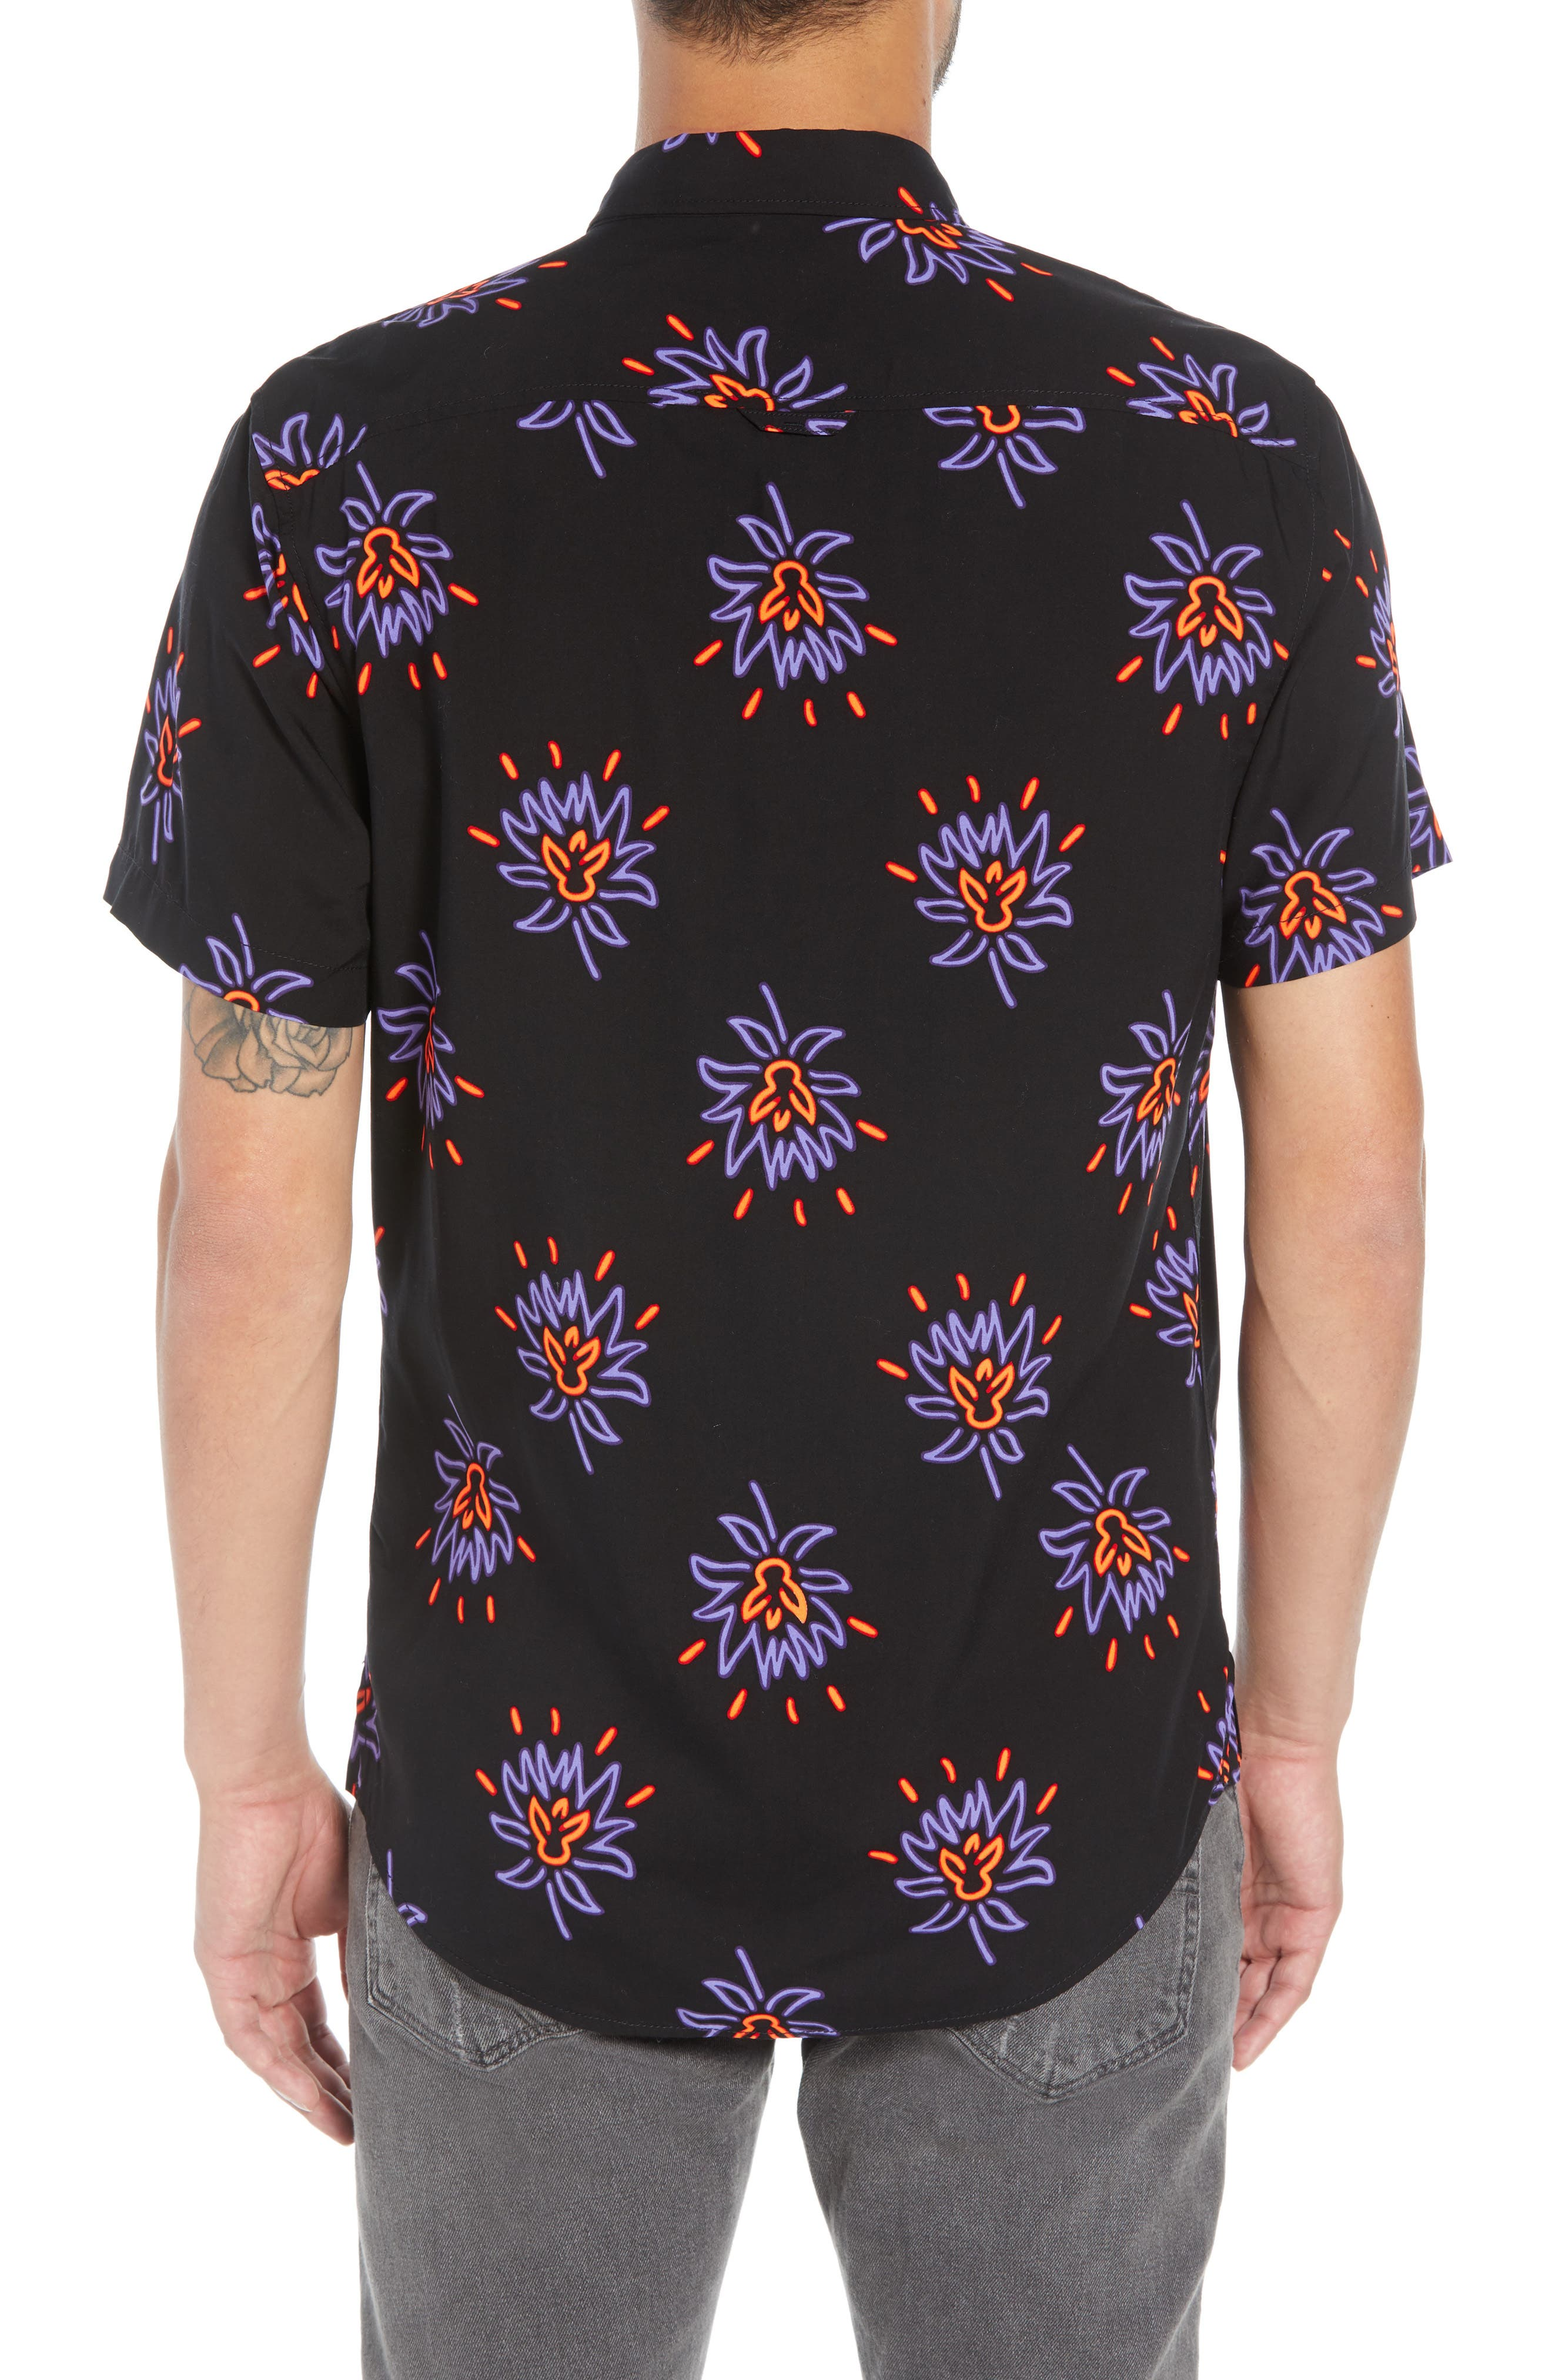 Neon Flower Print Woven Shirt,                             Alternate thumbnail 2, color,                             BLACK PURPLE NEON FLORAL